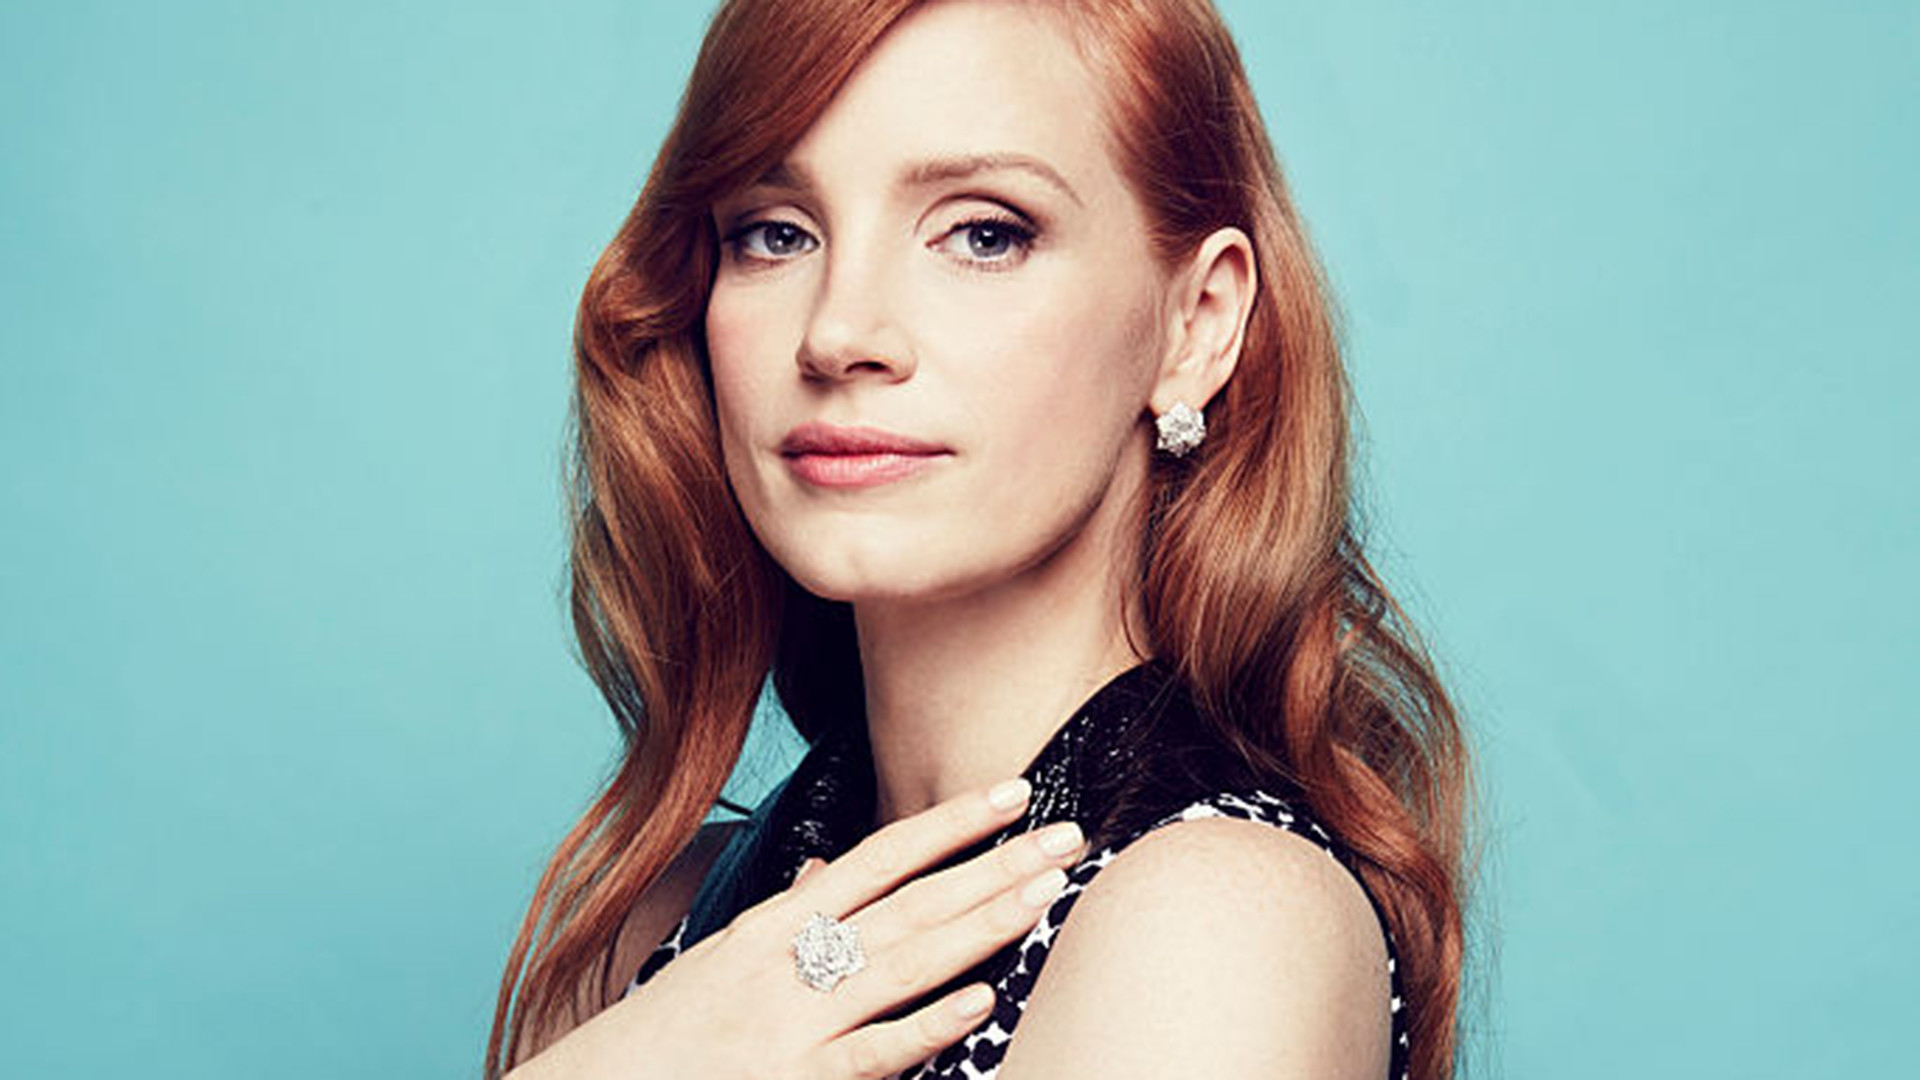 1920x1080 Jessica Chastain Wallpapers - HD 11 ...